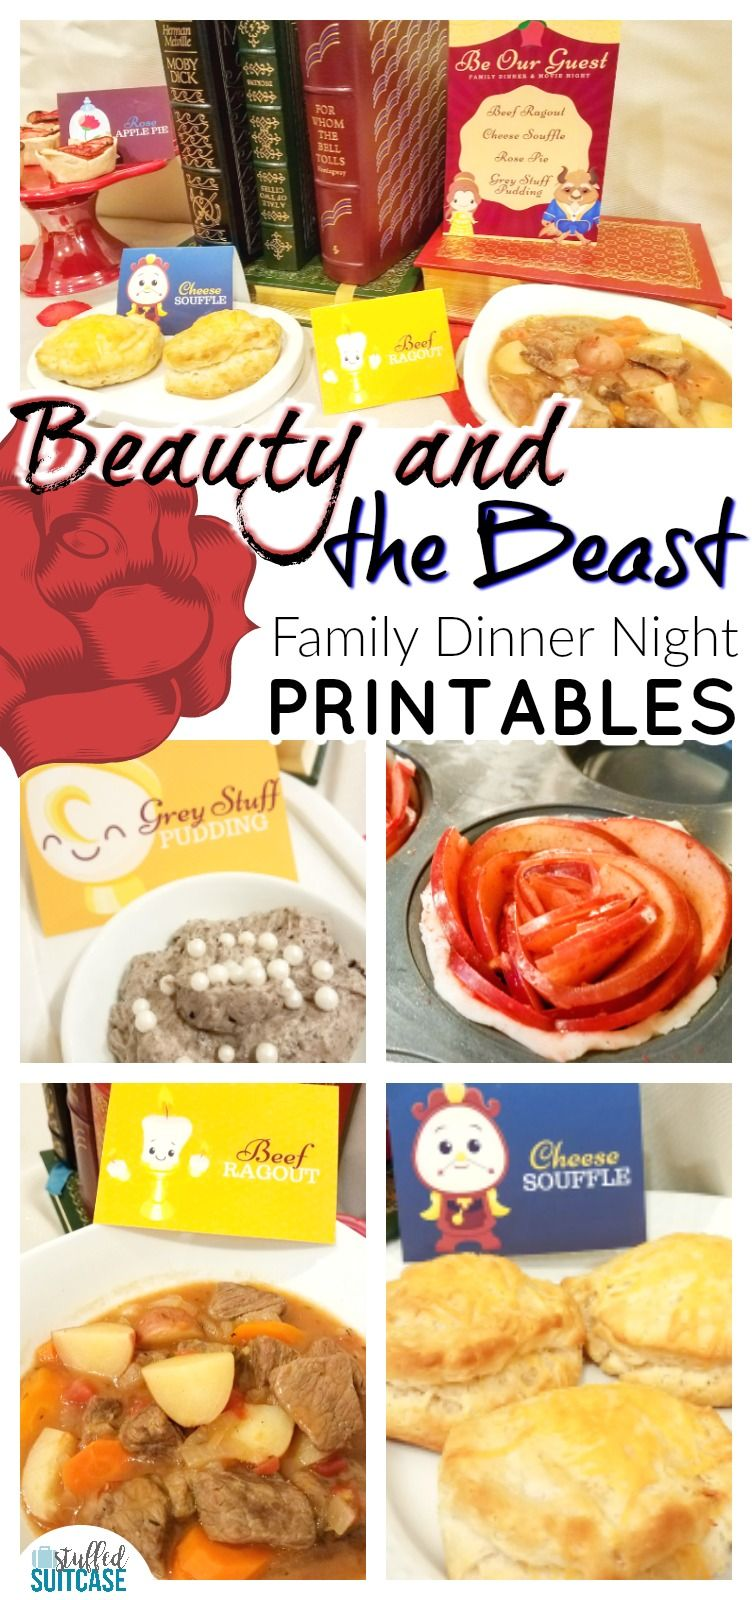 Beauty And The Beast Family Movie Night Dinner Printables Movie Night Dinner Disney Movie Night Dinner Family Dinner Night